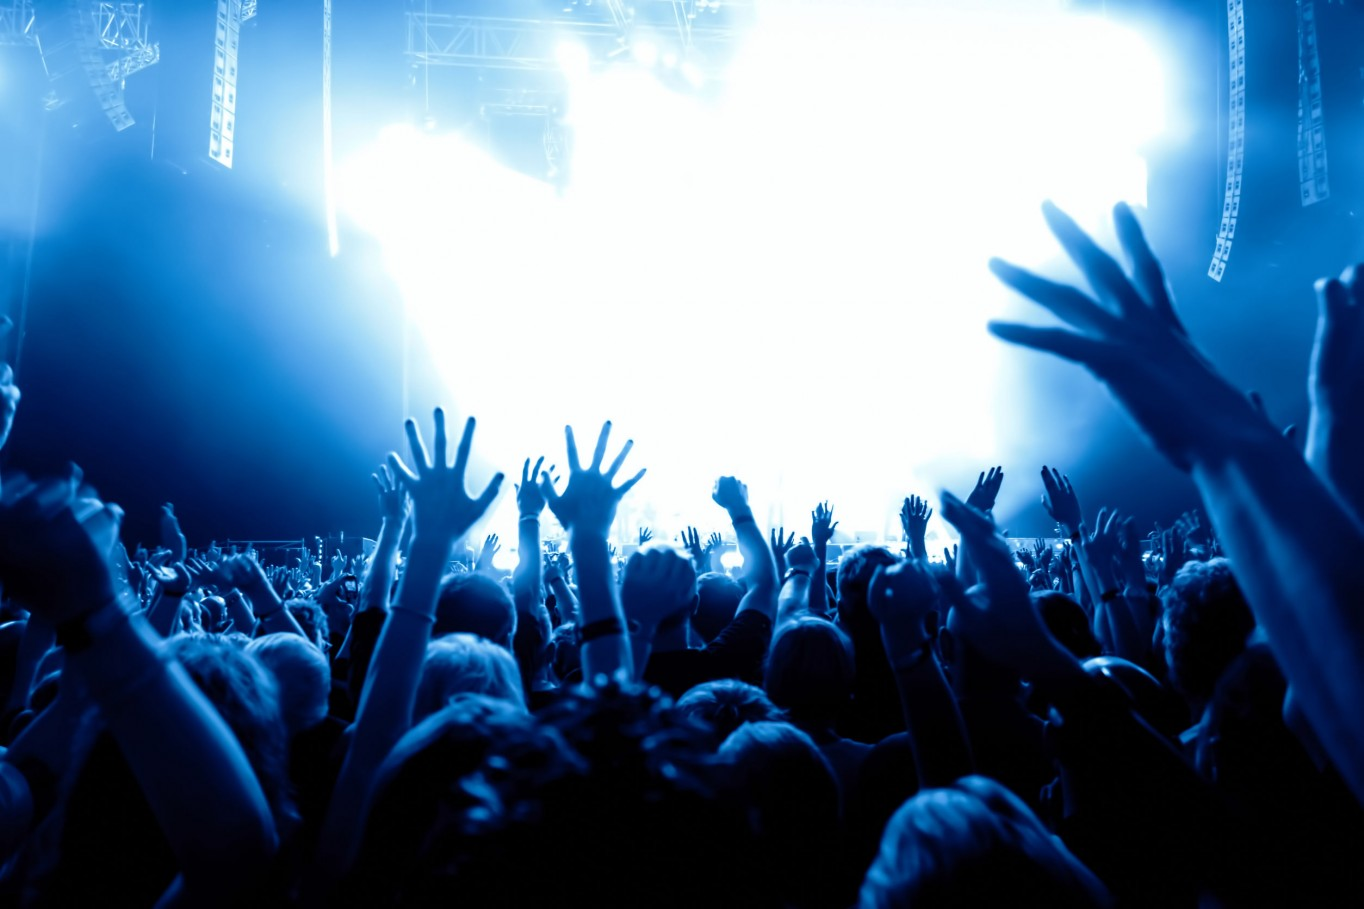 27732848 - silhouettes of concert crowd in front of bright stage lights